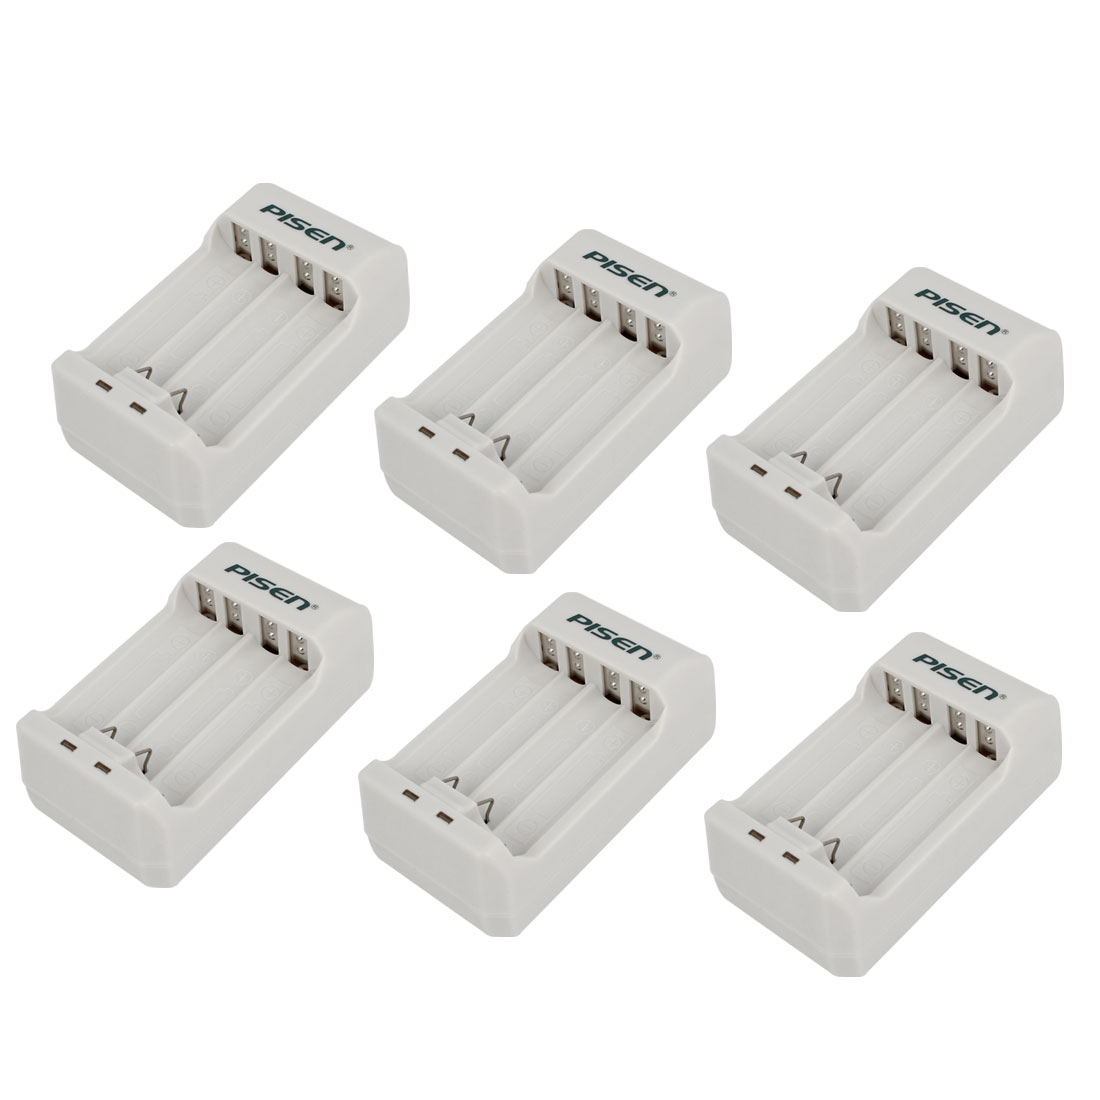 AC 100-240V US Plug AA AAA NI-MH Rechargeable Battery Quick Charger 6Pcs